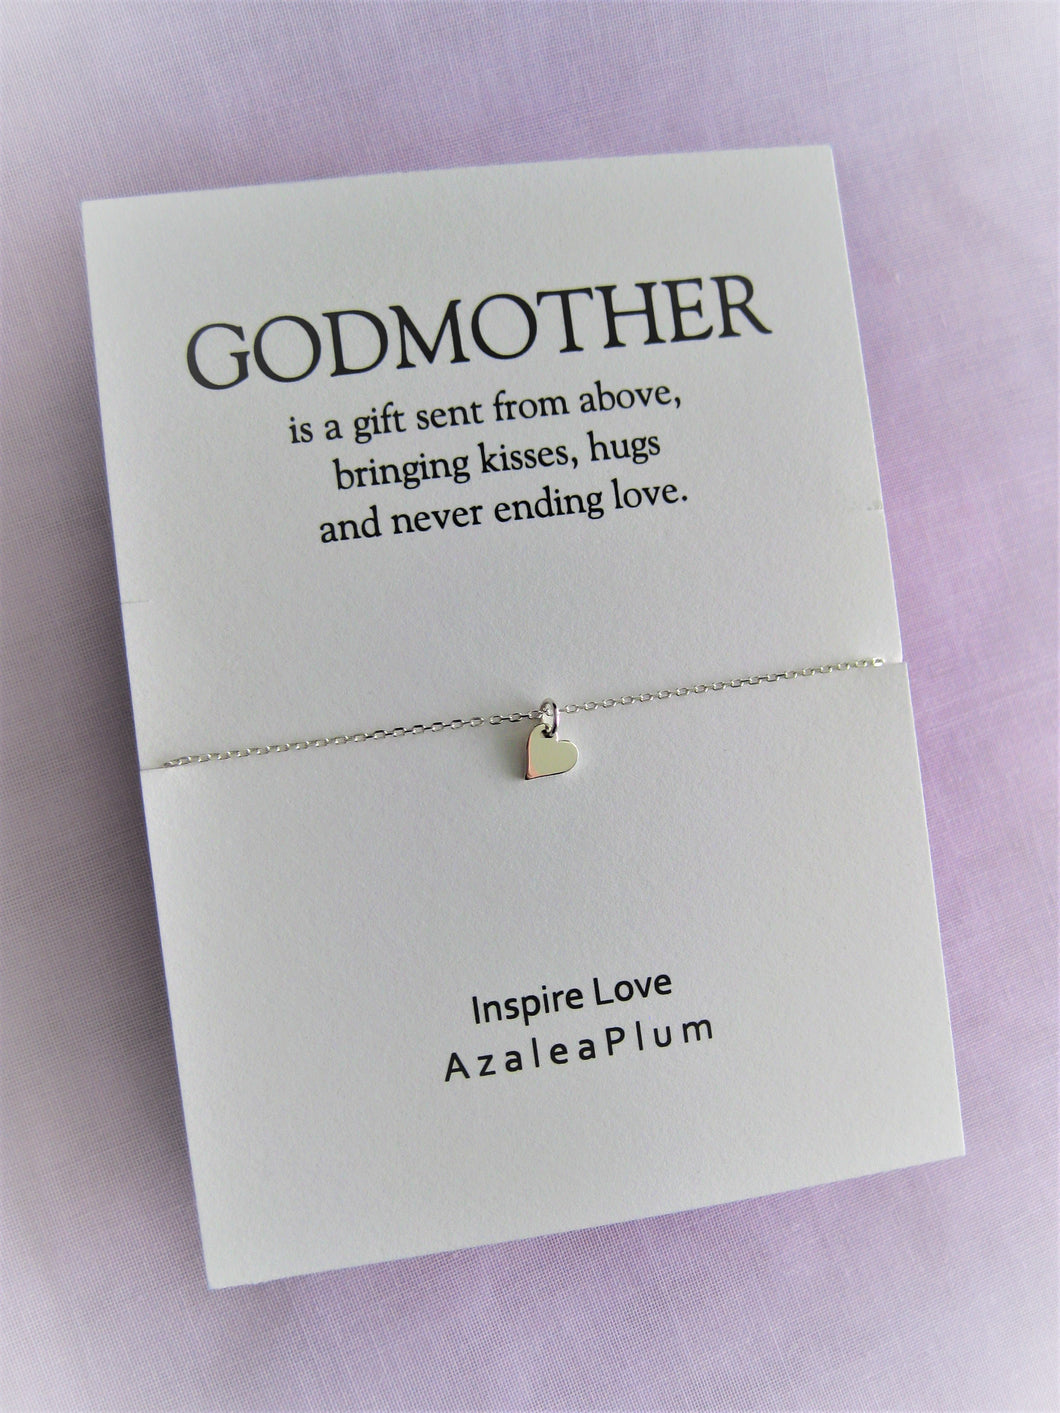 Godmother GIFT, Godmother, Godmother Proposal, Fairy Godmother, Be My Godmother, Godmother Request, Solid Sterling Silver Godmother Necklace